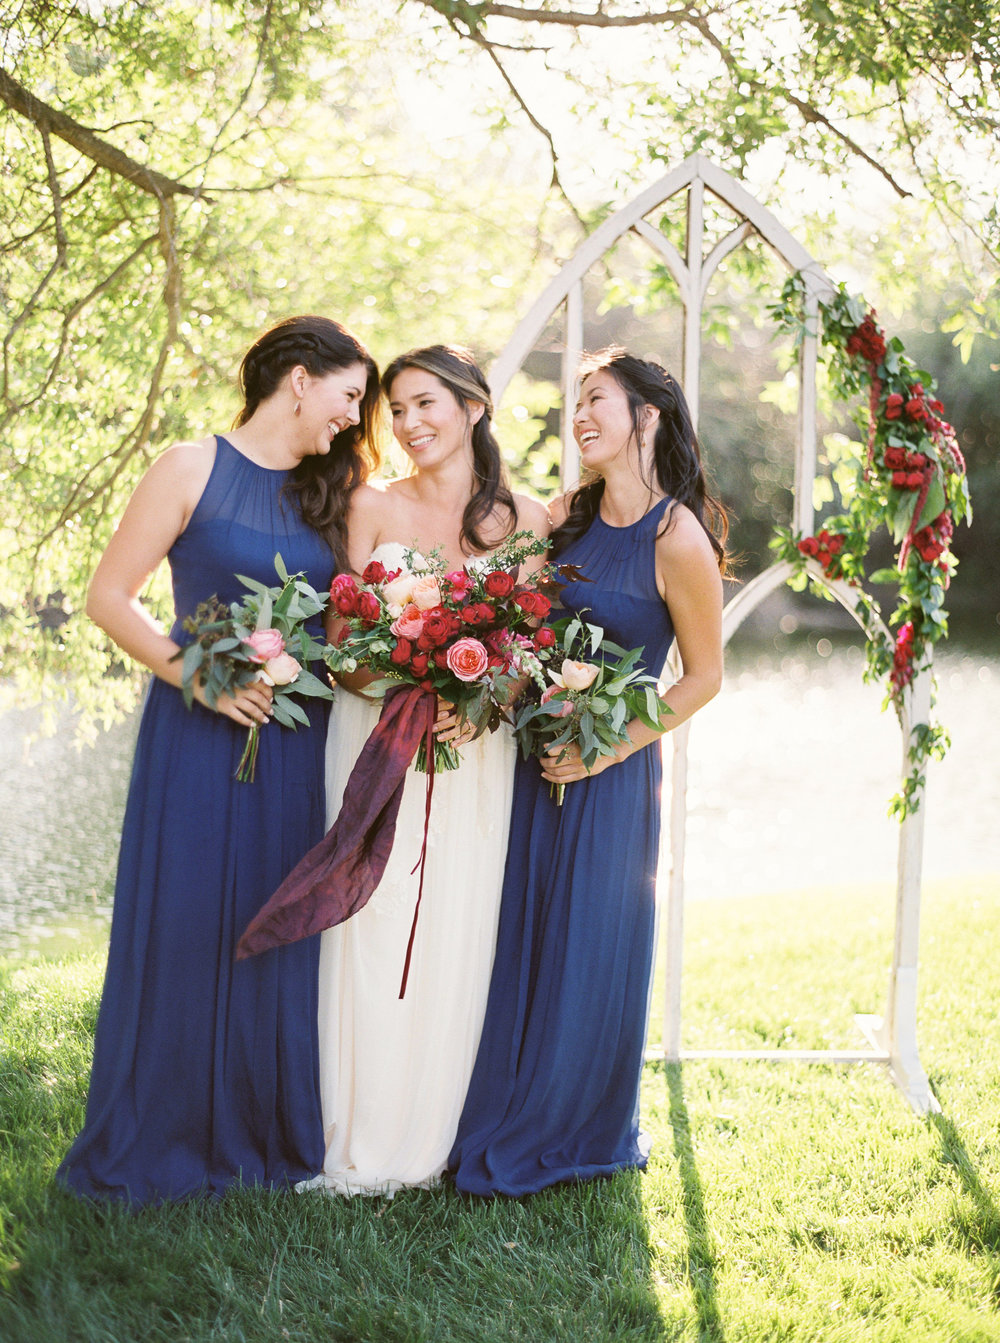 WilderFloralCo_LateSummerHarvest_GreengateRanch_BridesandBridesmaidsBouquets